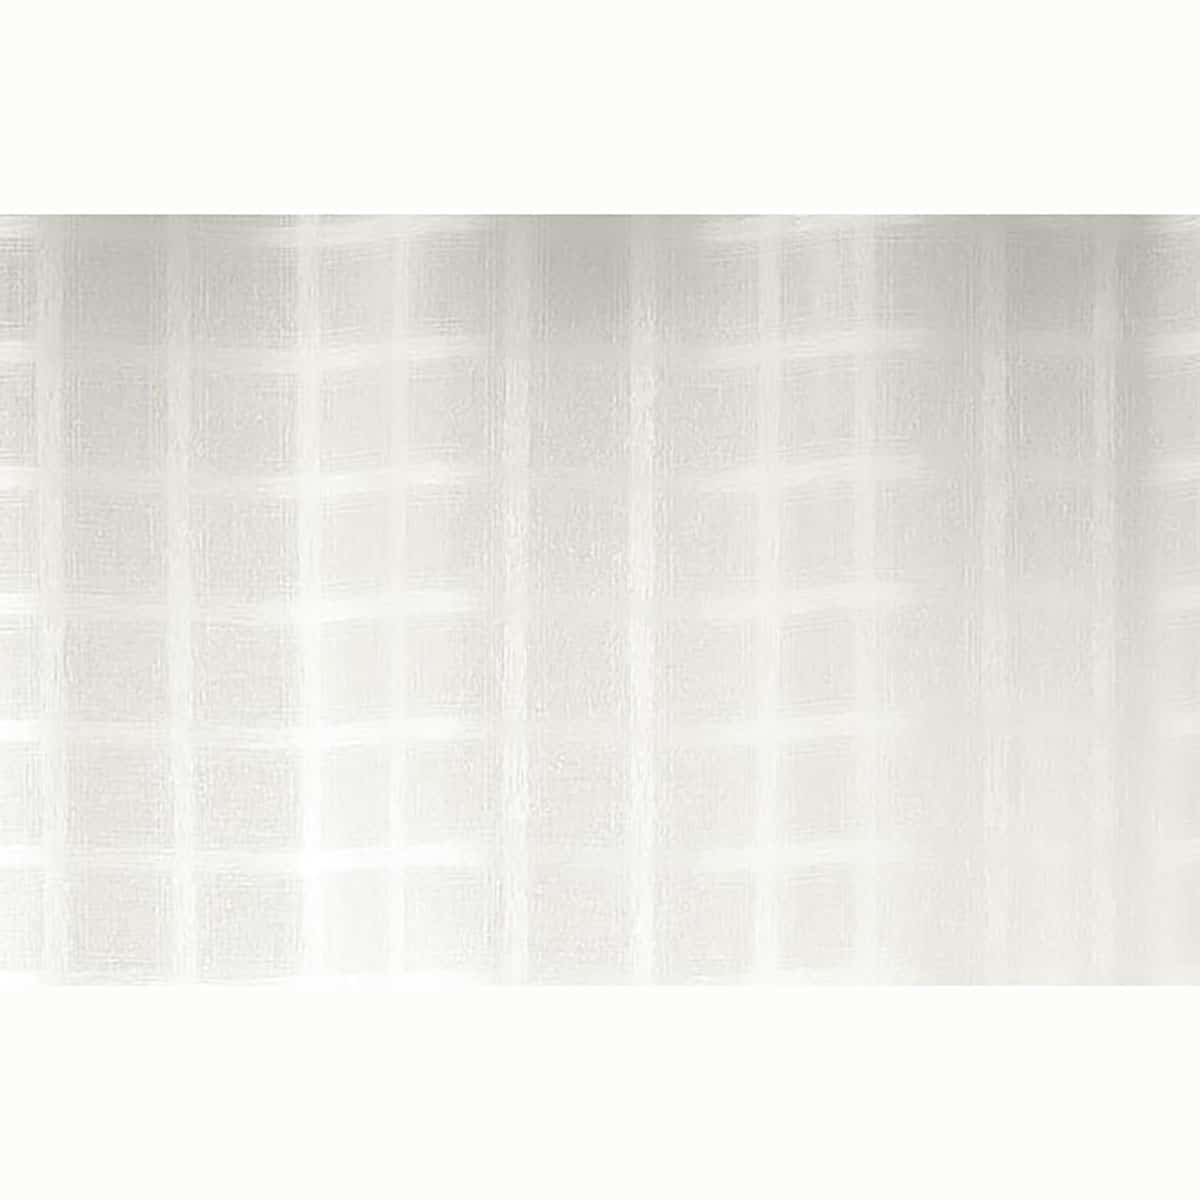 Printed Net Curtain Panel with Eyelets Sanded Voile Candide 55W x 95L Beige